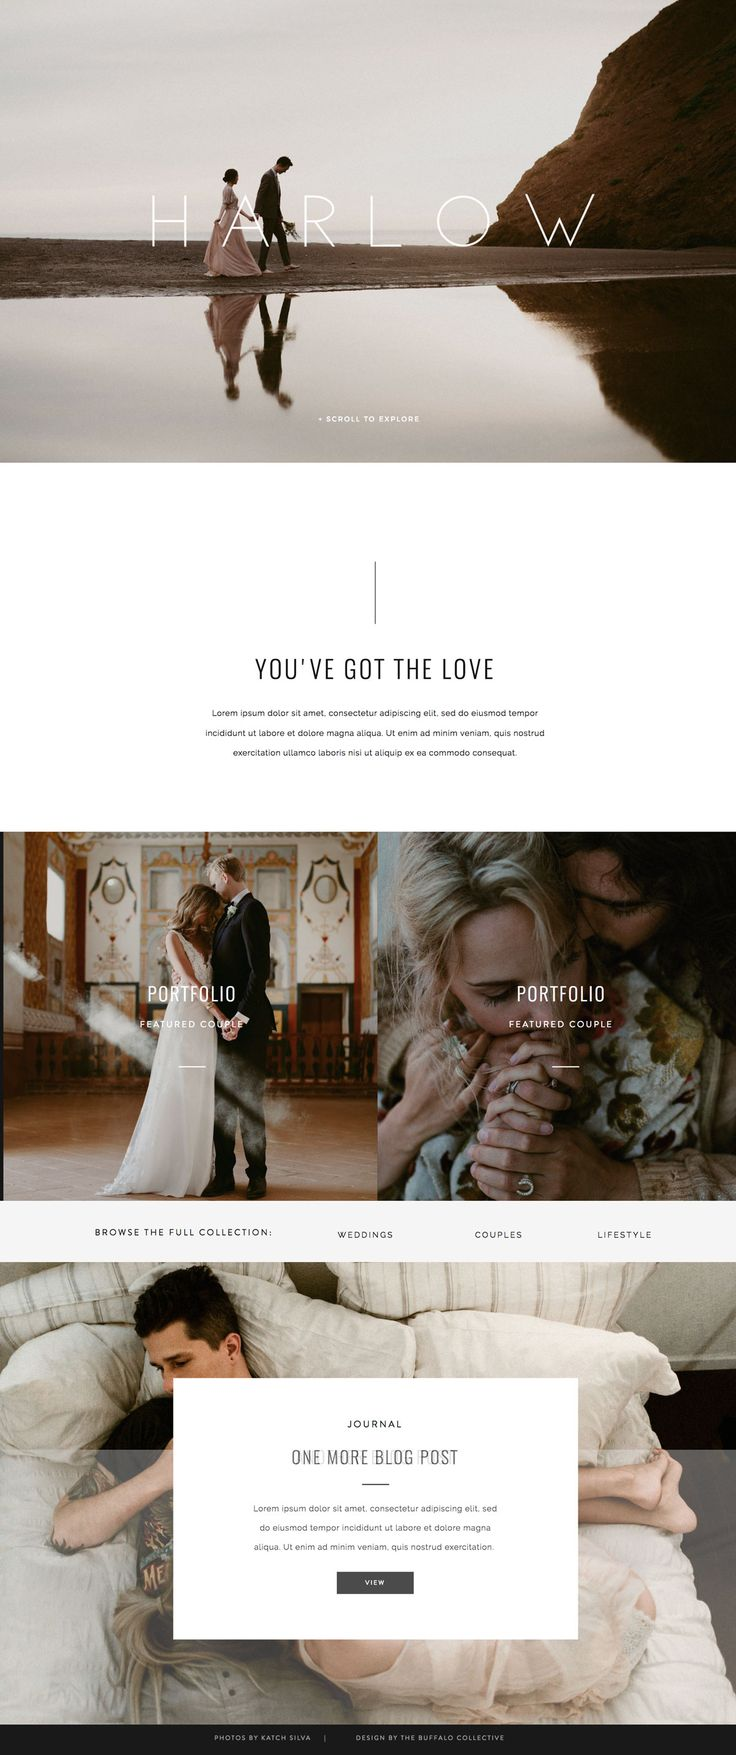 Harlow - Showit Premium Photography Website Template Design